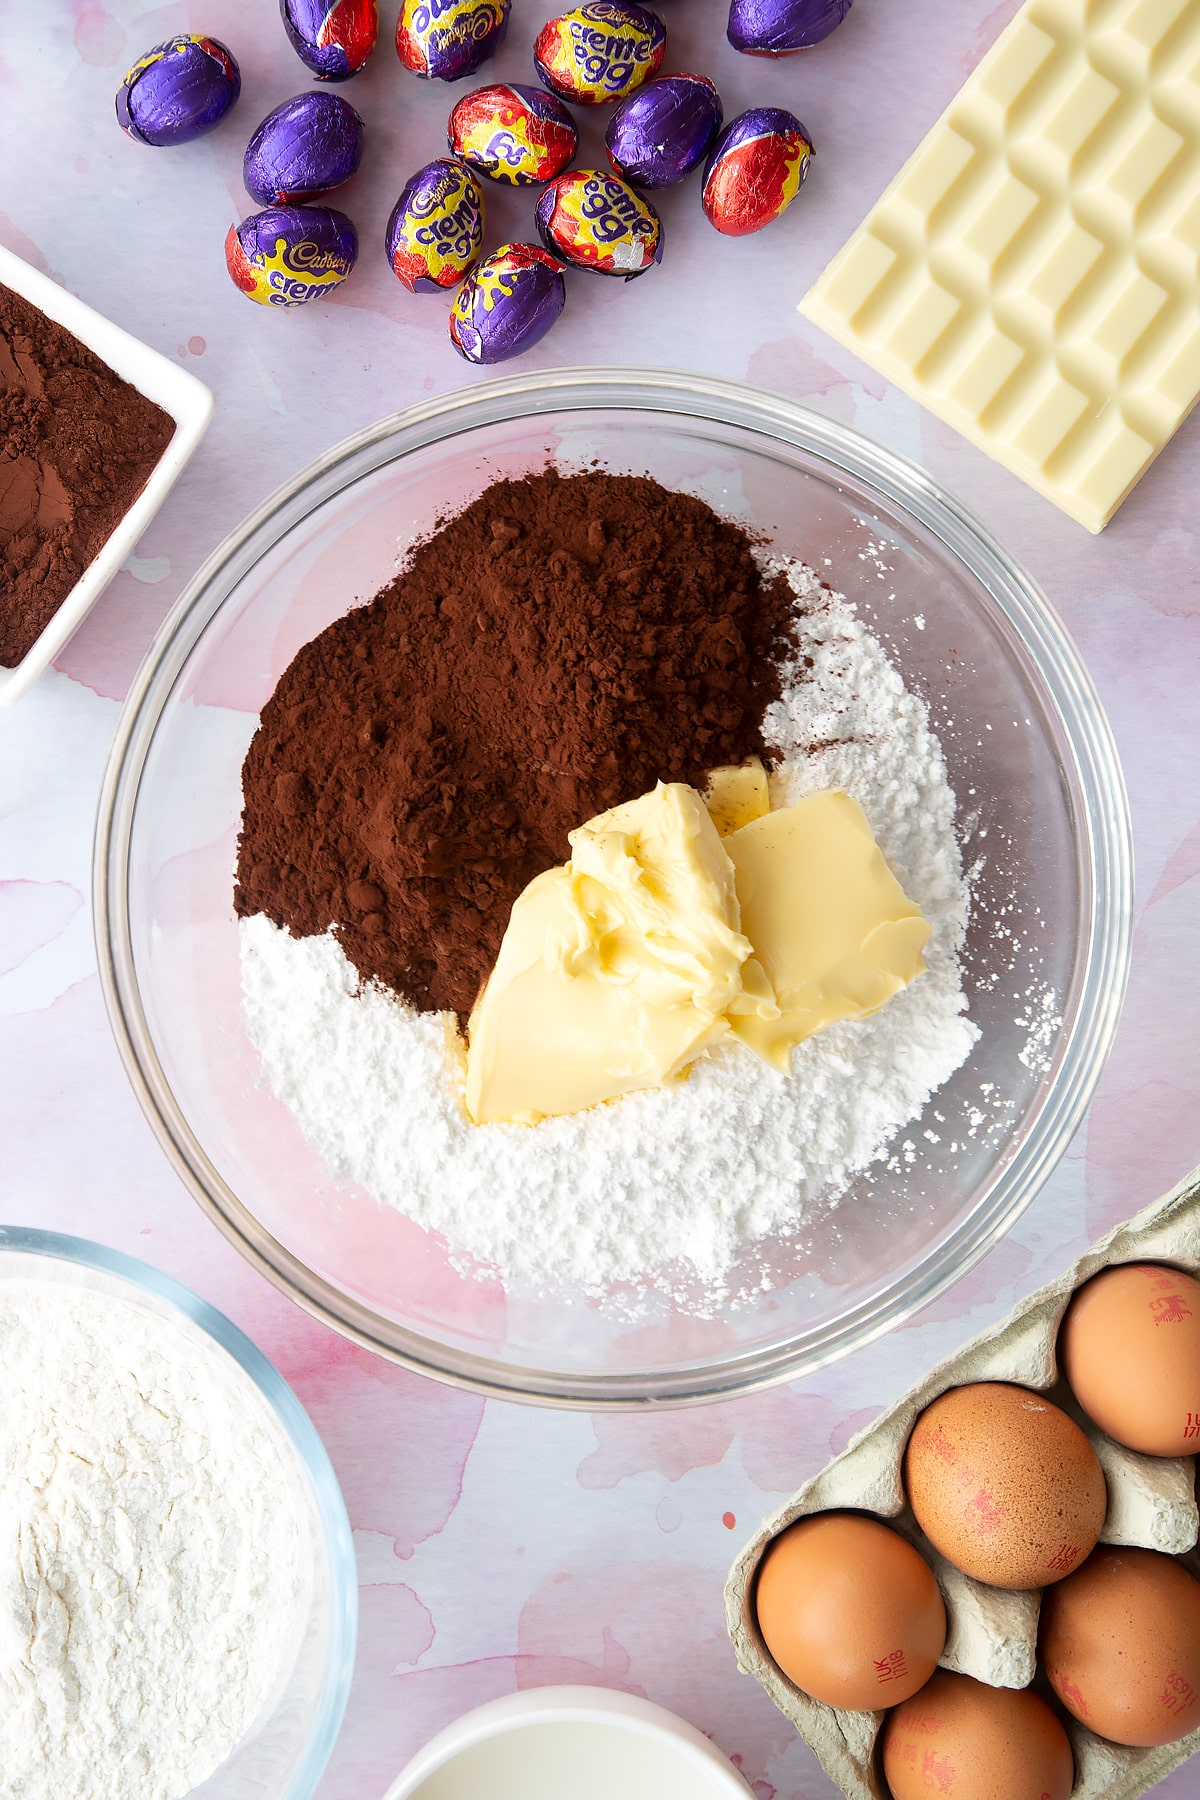 Butter, icing sugar, cocoa powder and water in a bowl. Ingredients to make Cadbury Creme Egg cakes surround the bowl.